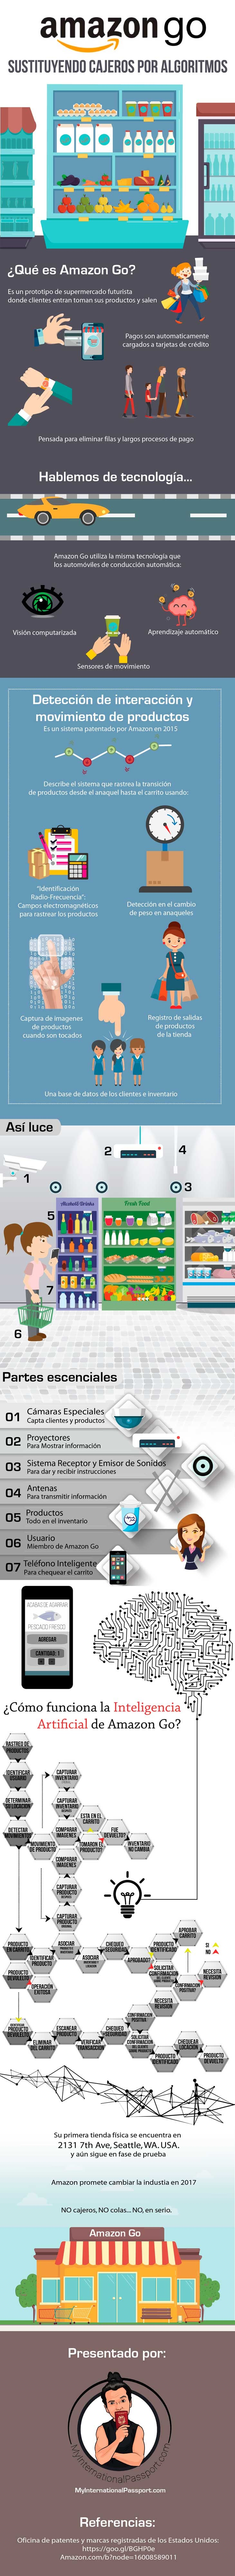 Así funciona el super mercado del futuro [ Amazon Go ] 1